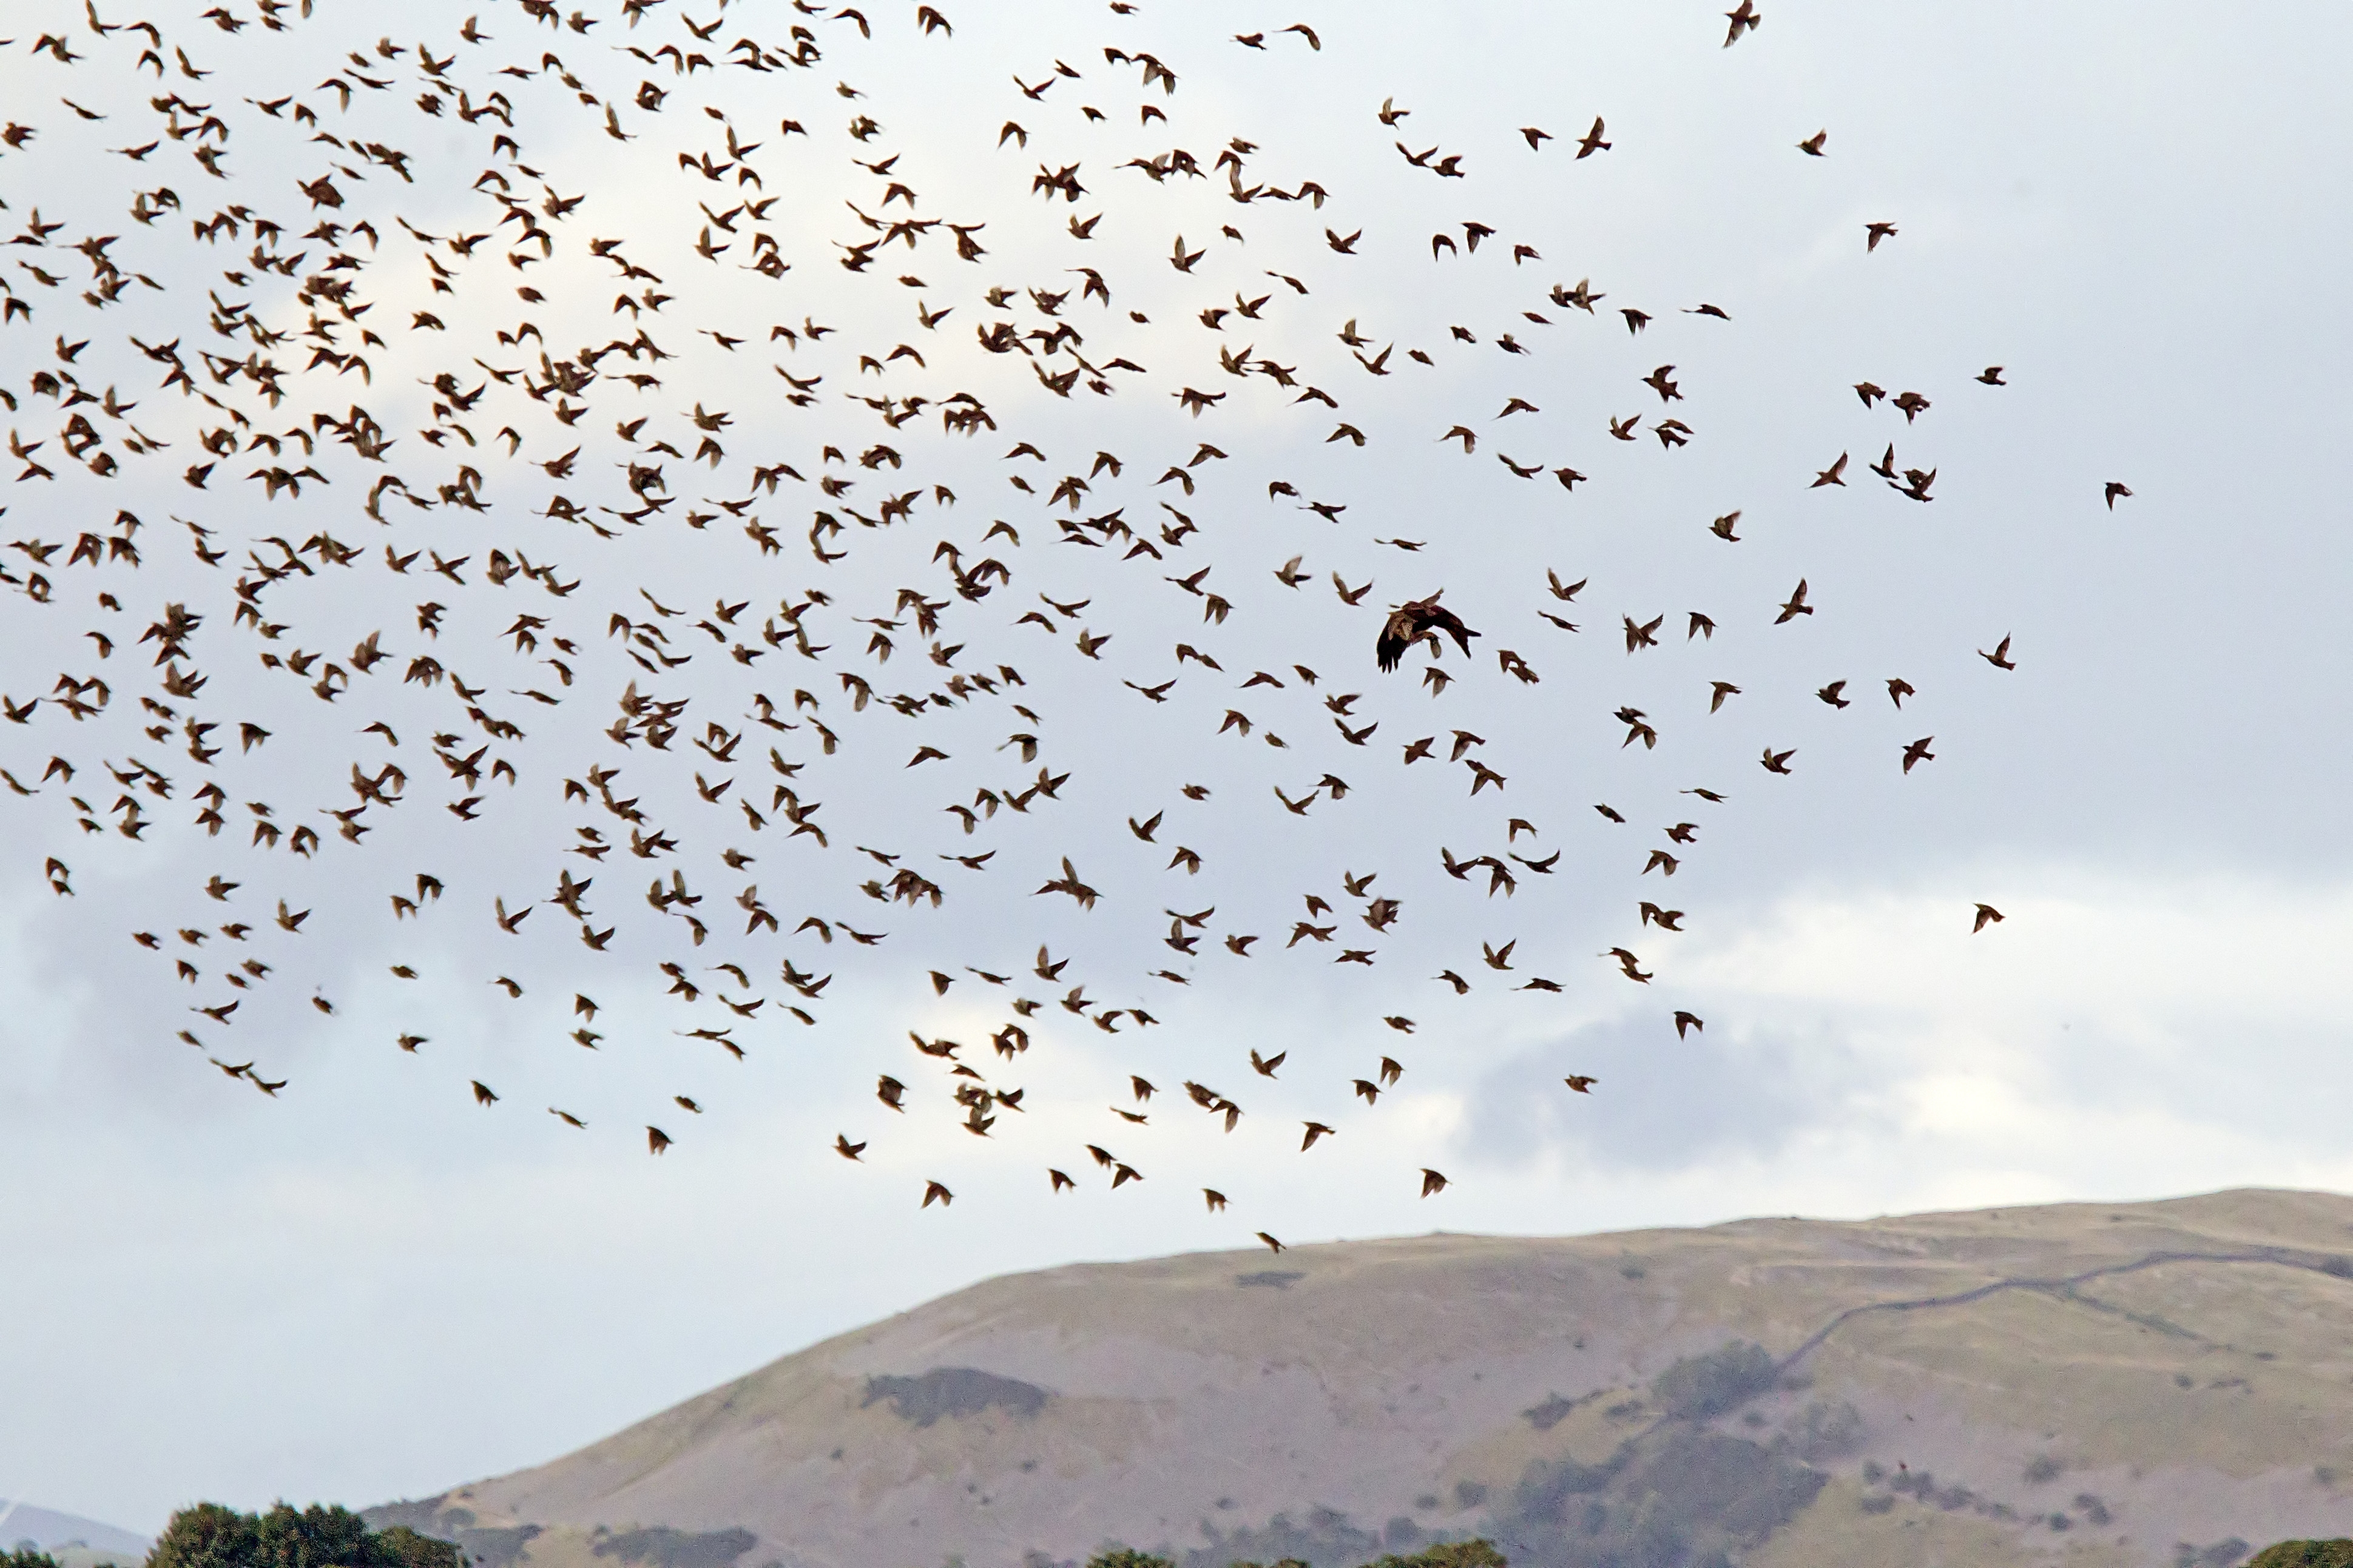 The Talons of Success, Evolution of the Harriers - Leighton Moss - Leighton  Moss - The RSPB Community